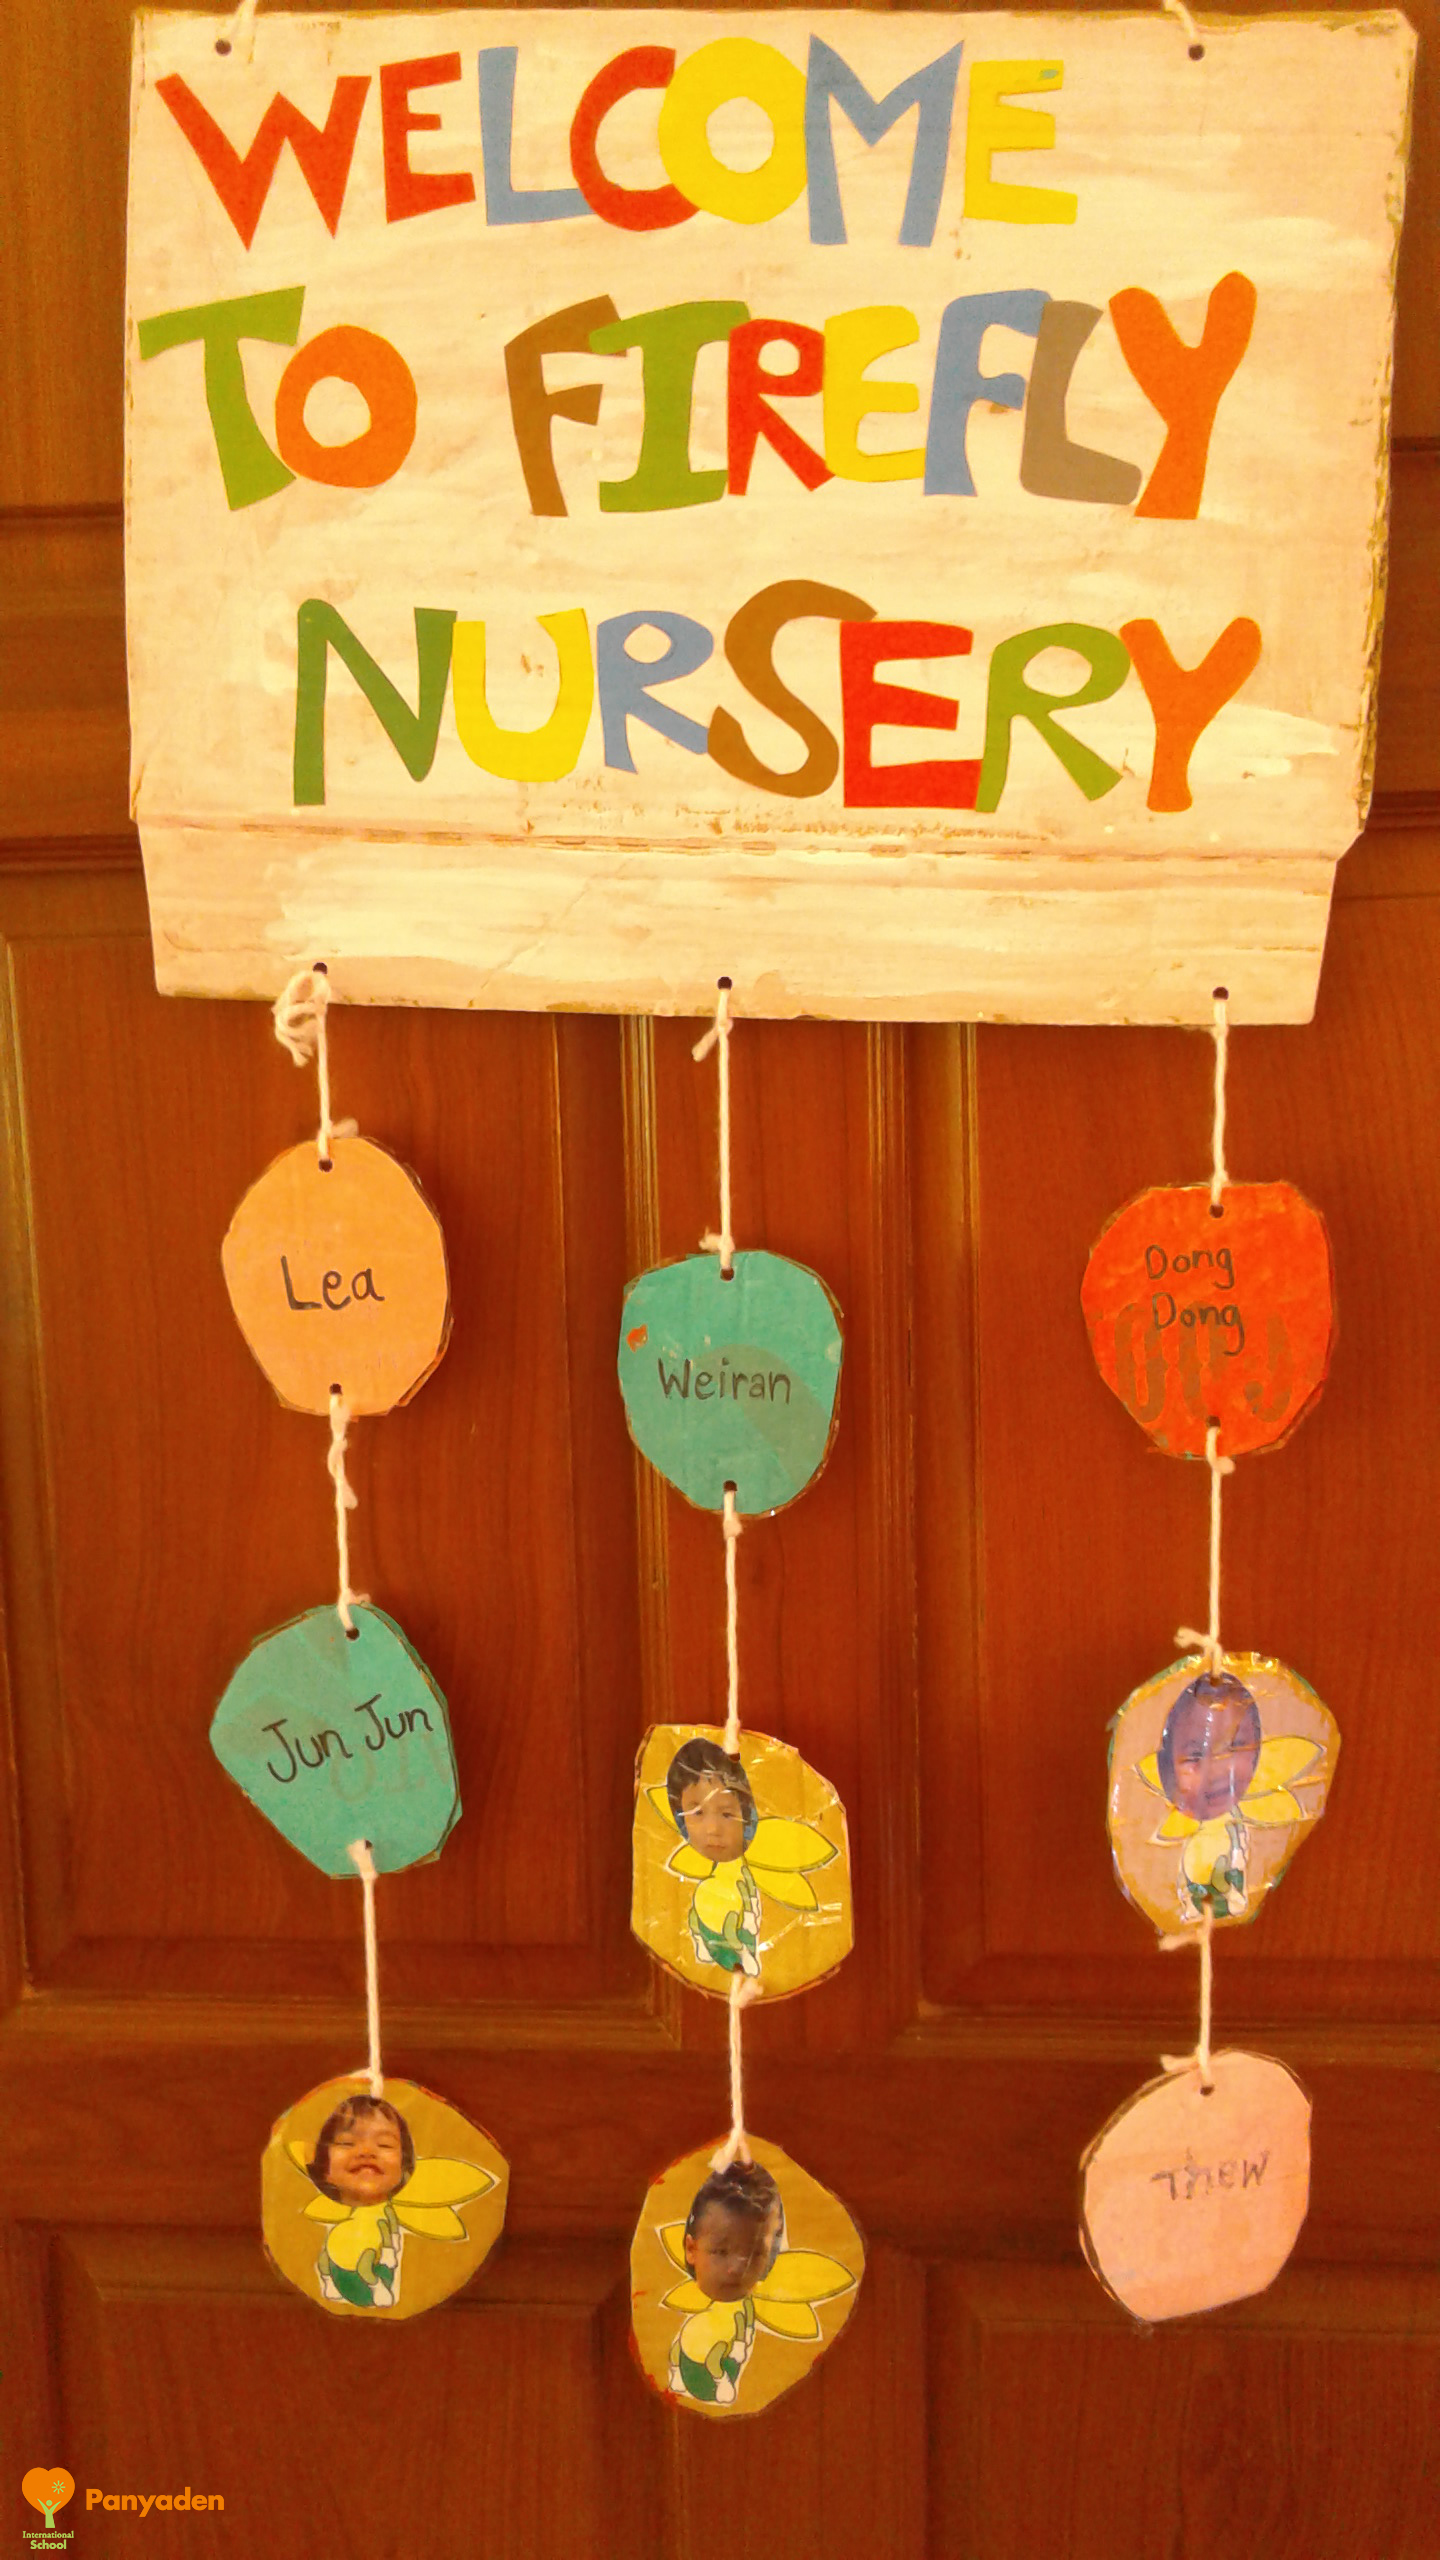 Panyaden temporary site: Nursery welcome sign